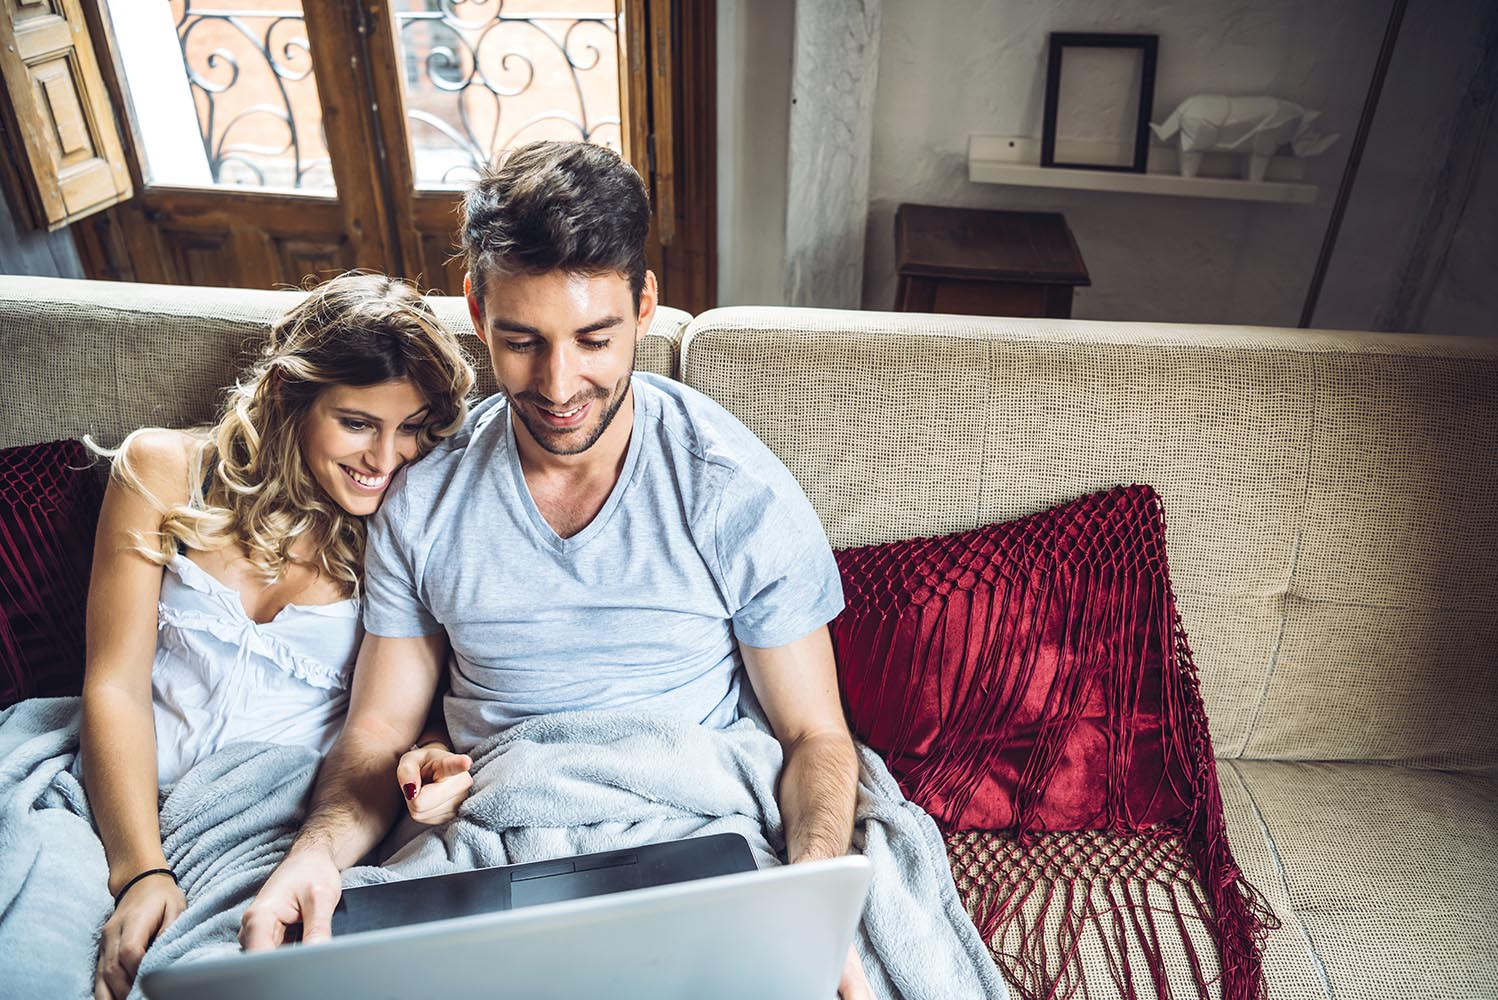 Couple enjoying time with laptop